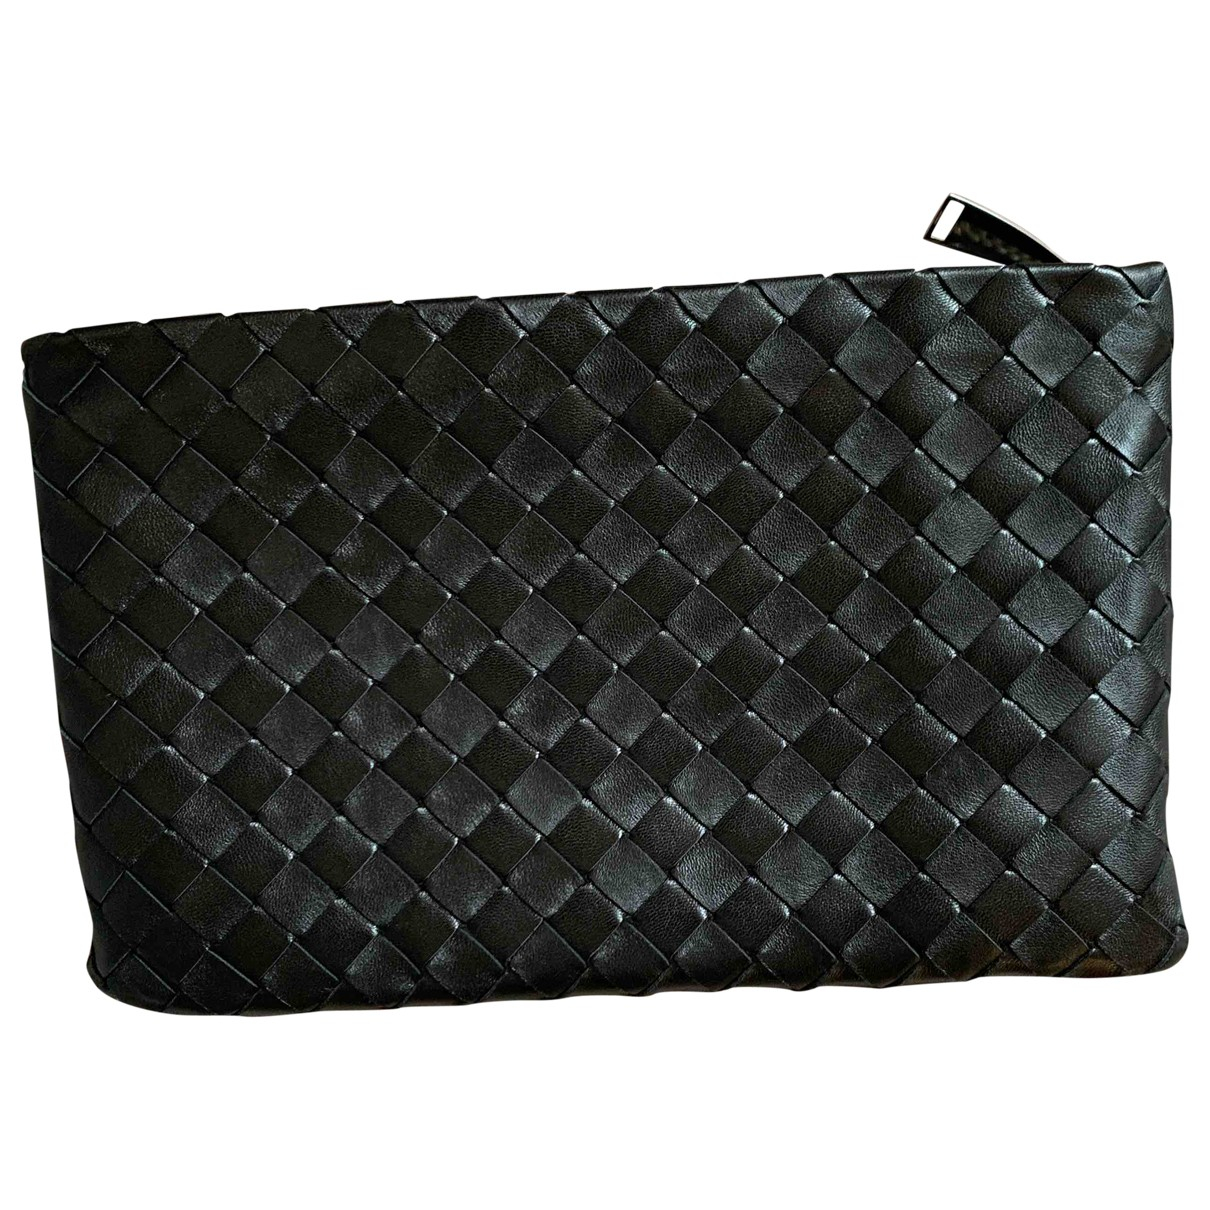 Bottega Veneta \N Black Leather Clutch bag for Women \N